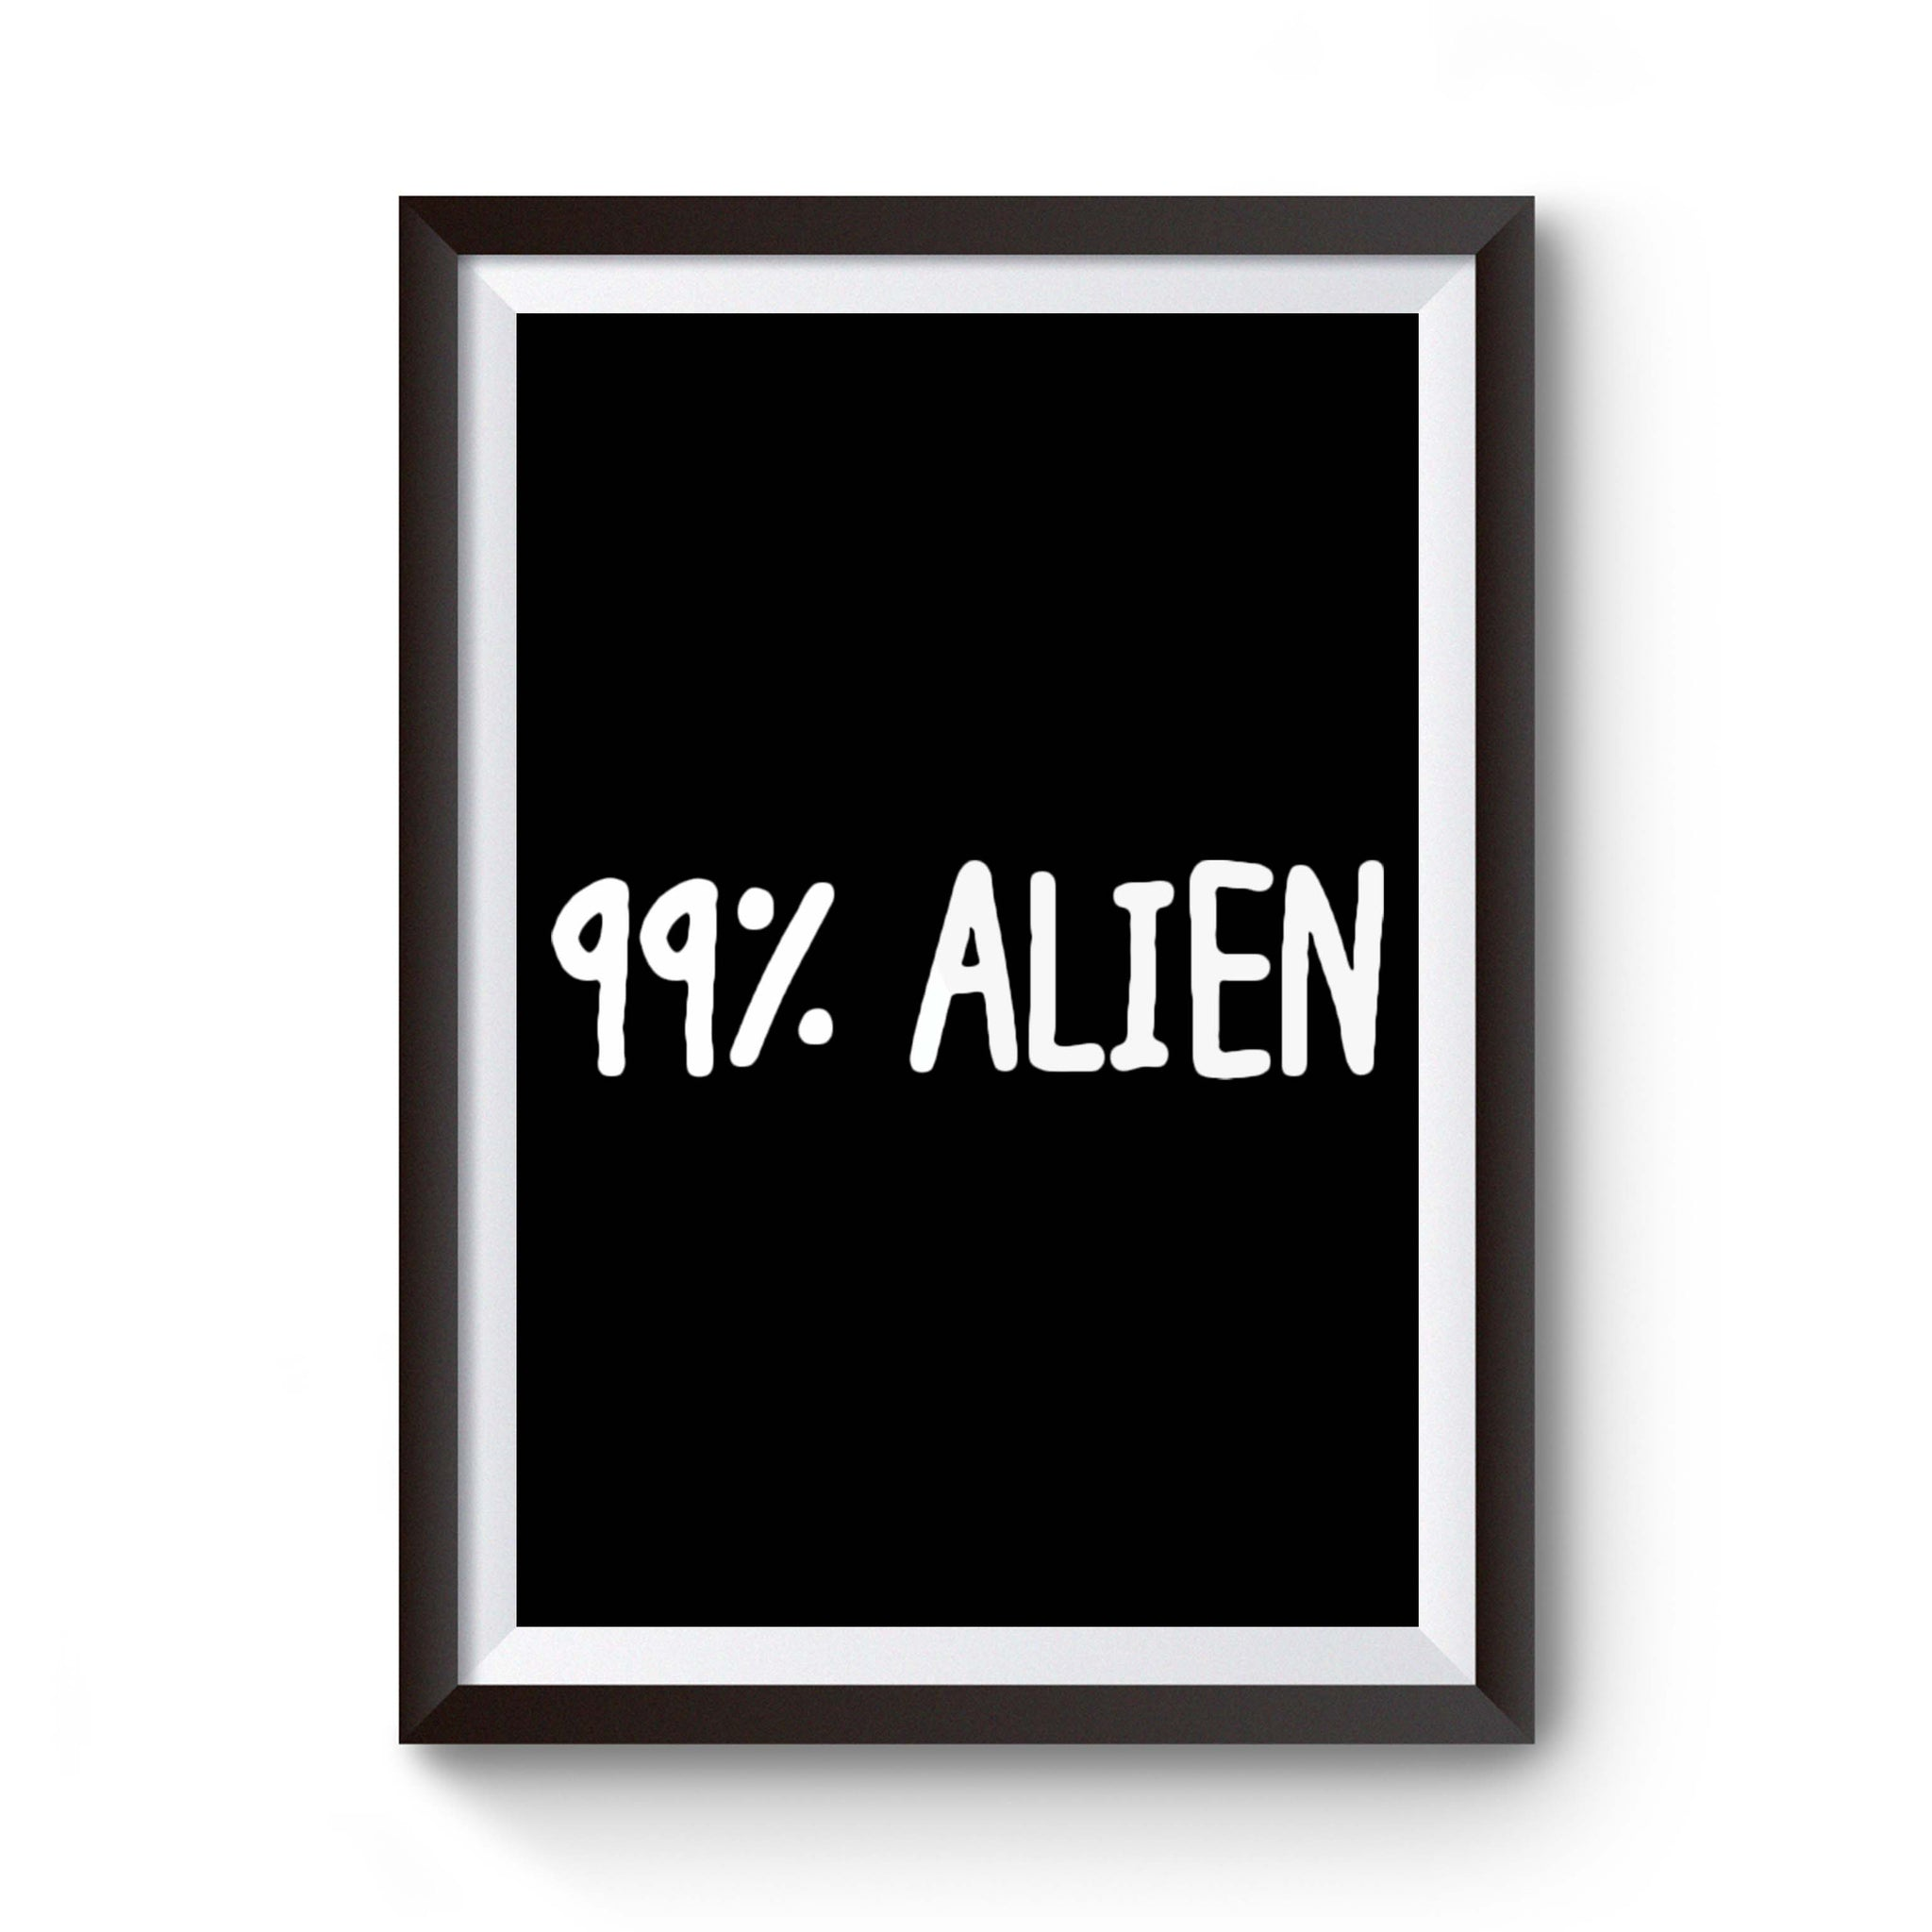 99% Alien Cheap Gifts Birthday Christmas Poster